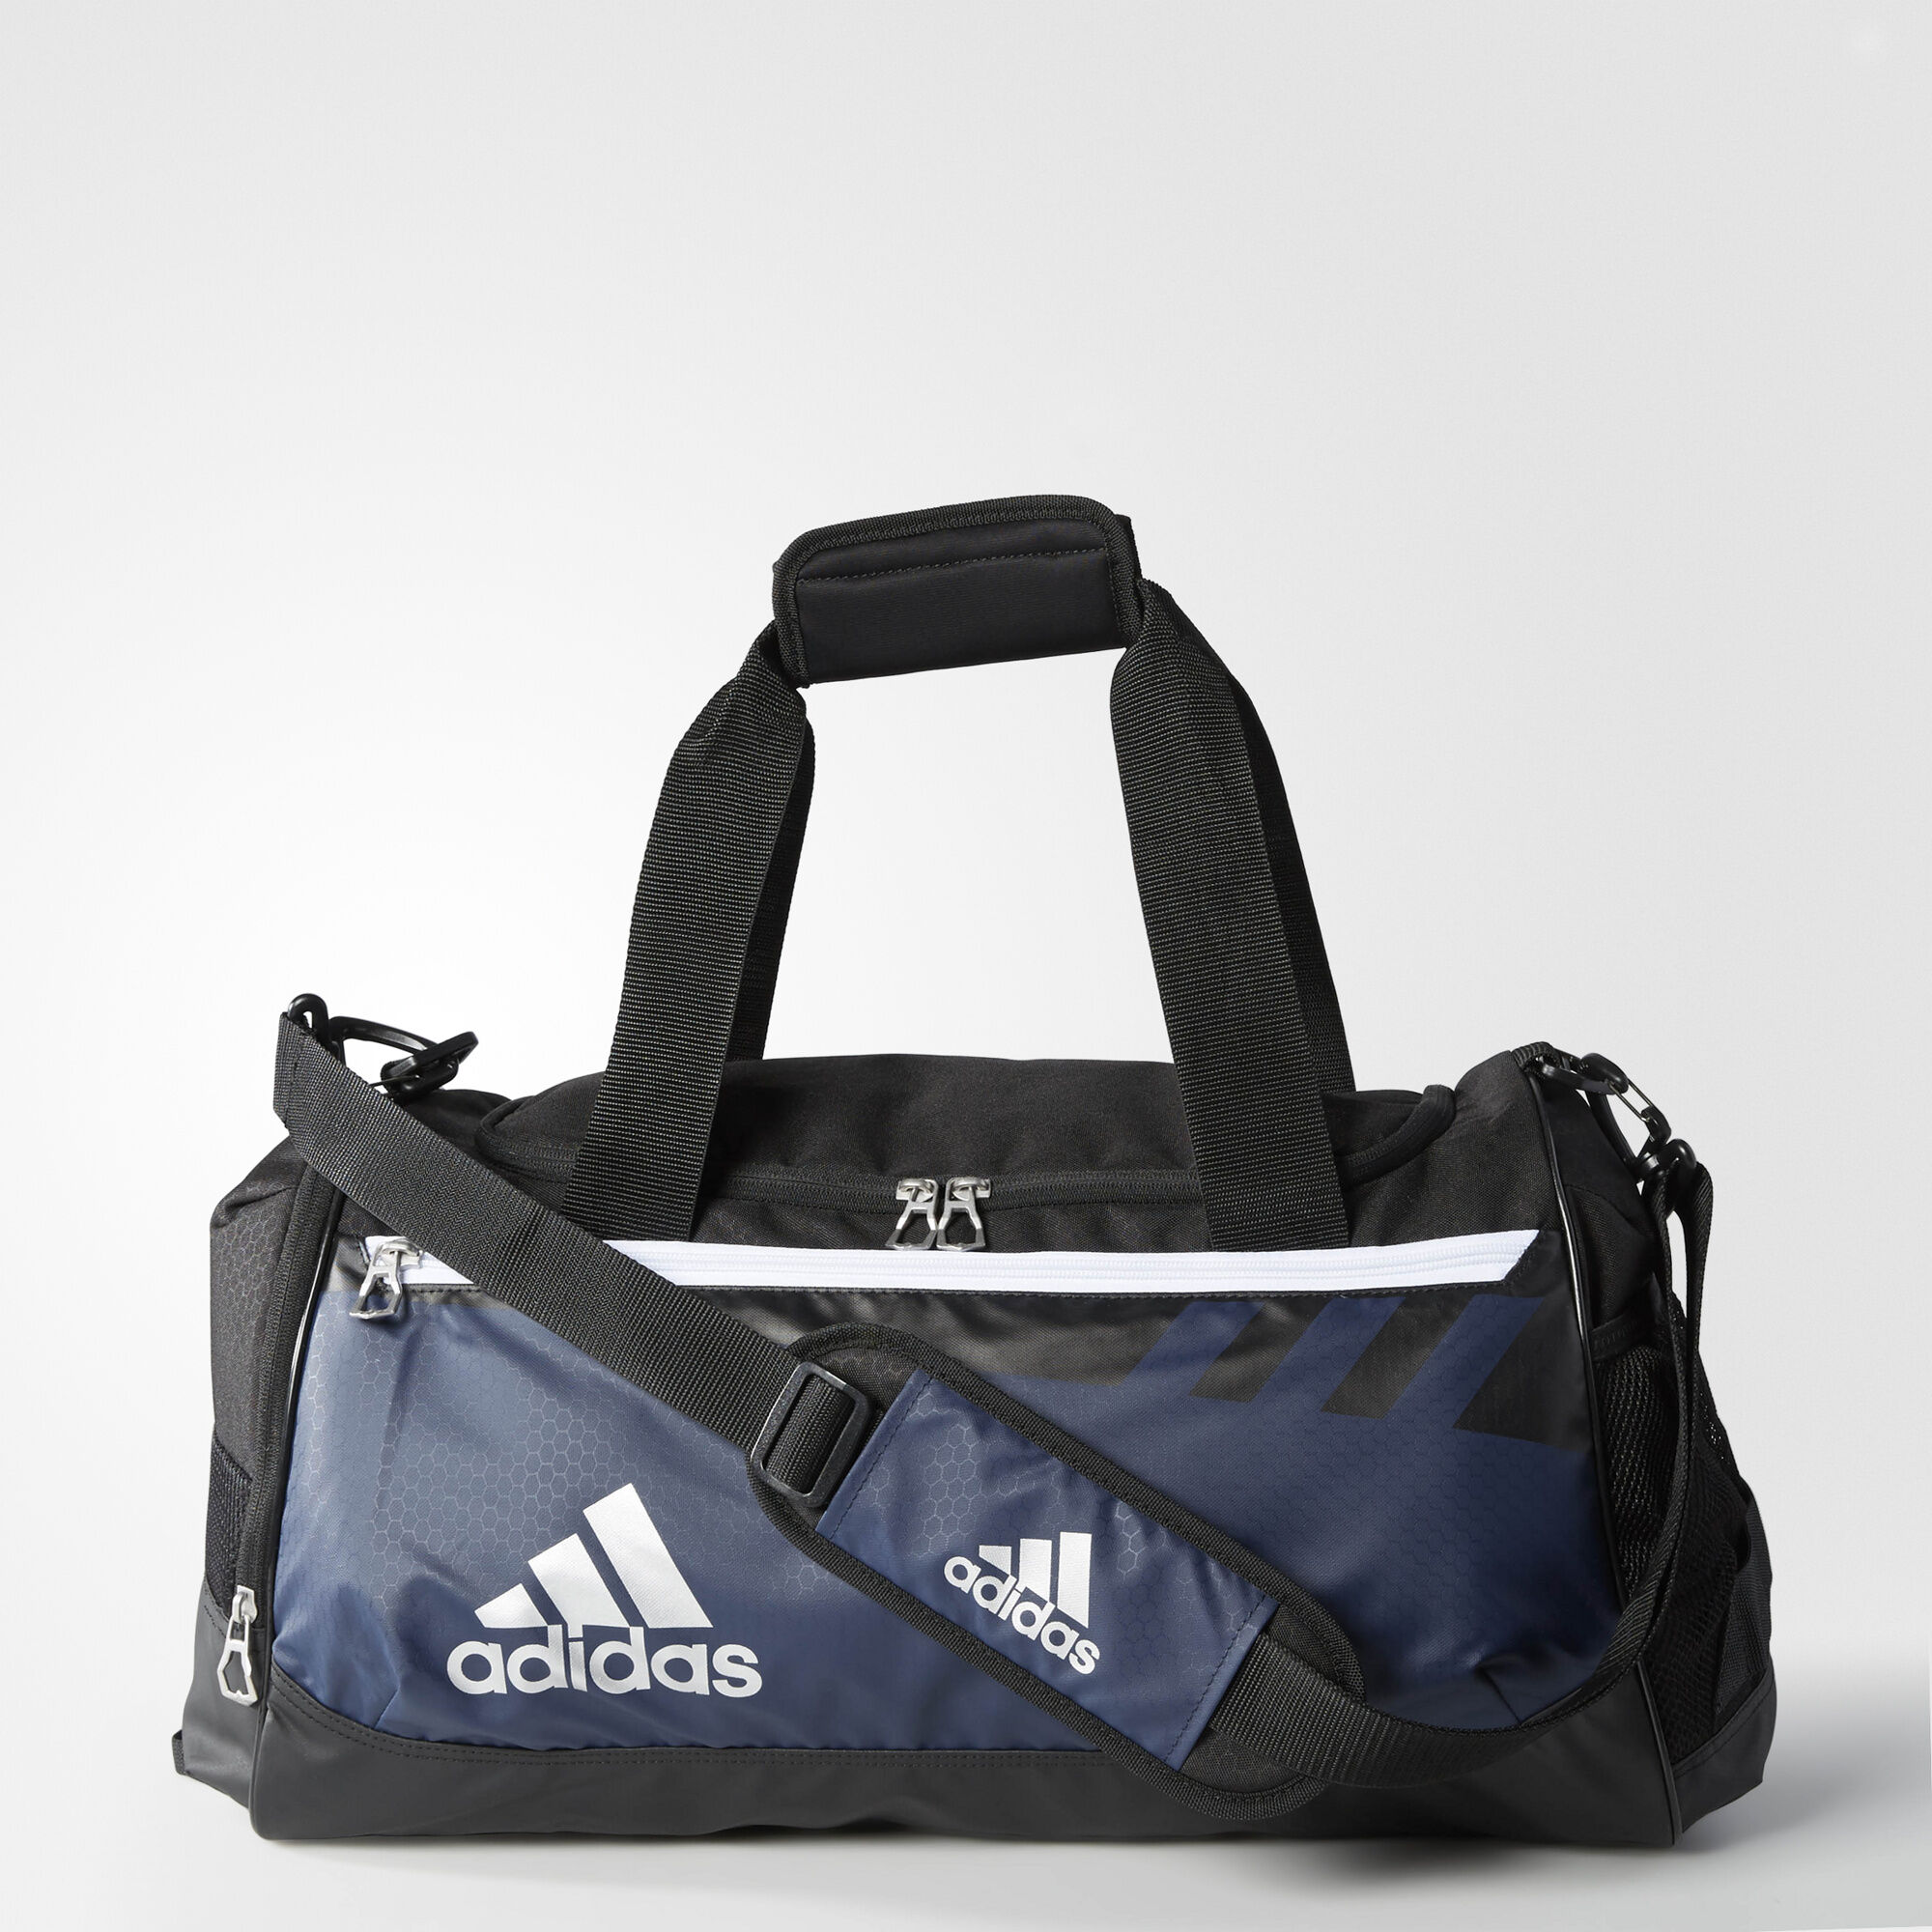 adidas duffle bag cheap   OFF73% The Largest Catalog Discounts b8d3aa5aab1d9